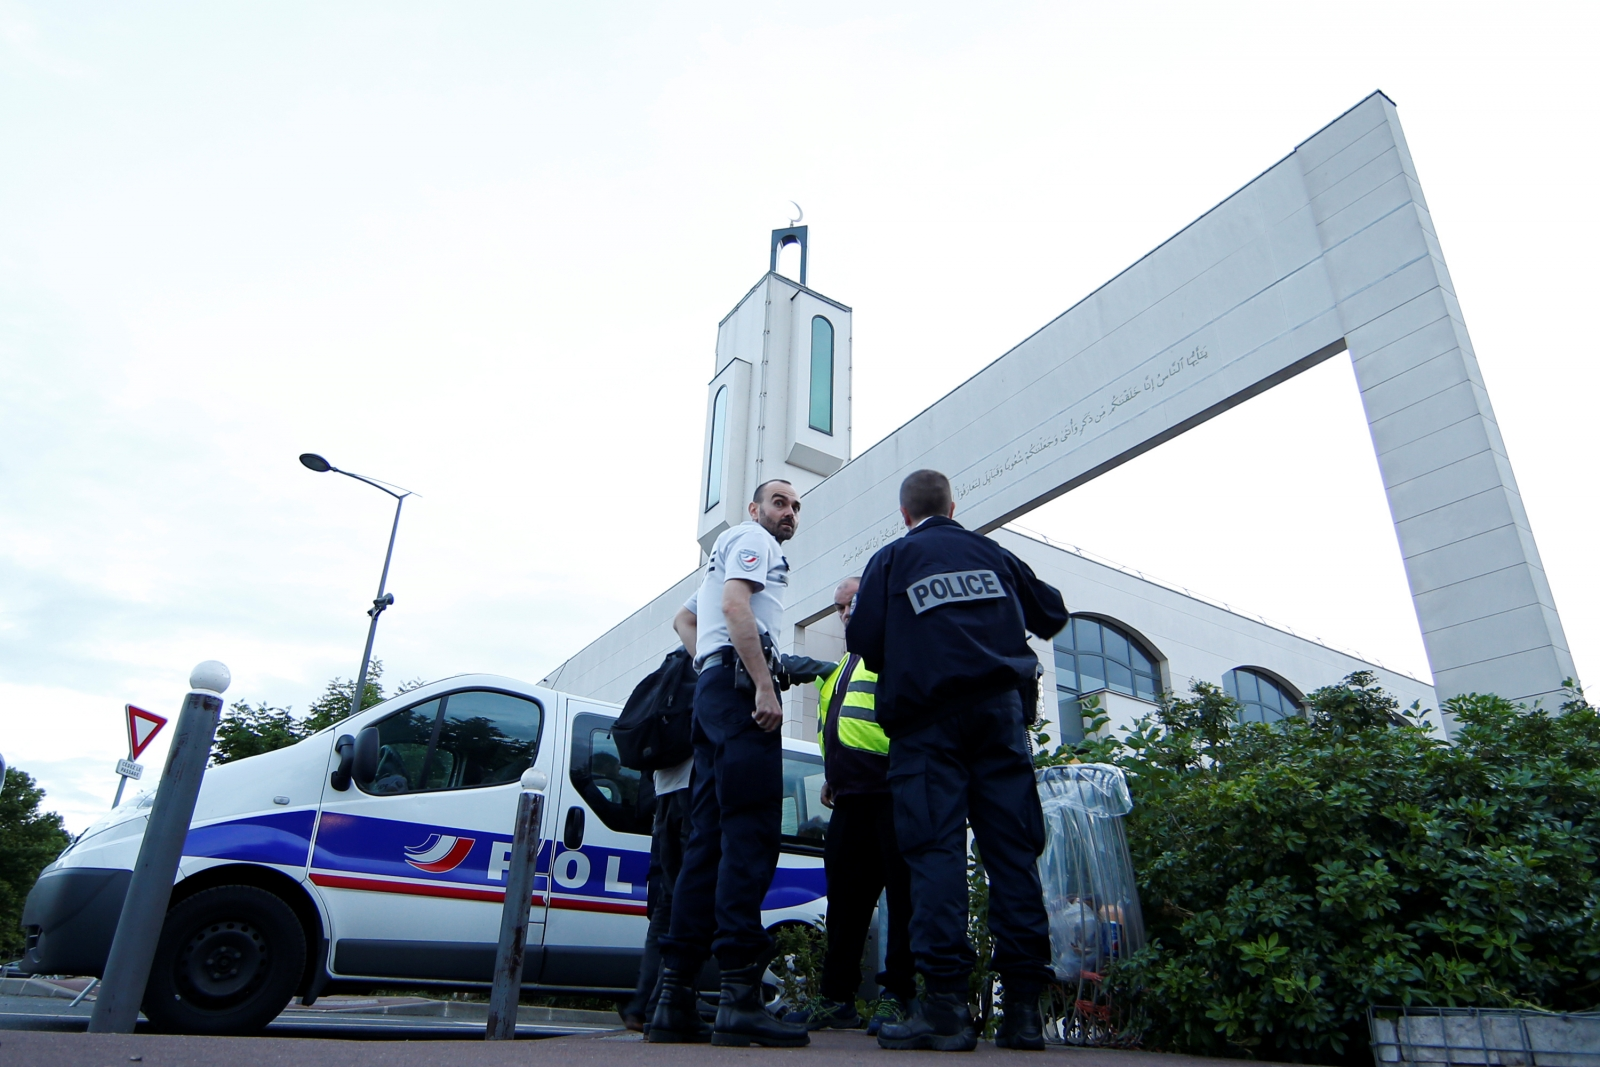 Man arrested after attempting to ram vehicle into crowd outside Paris mosque